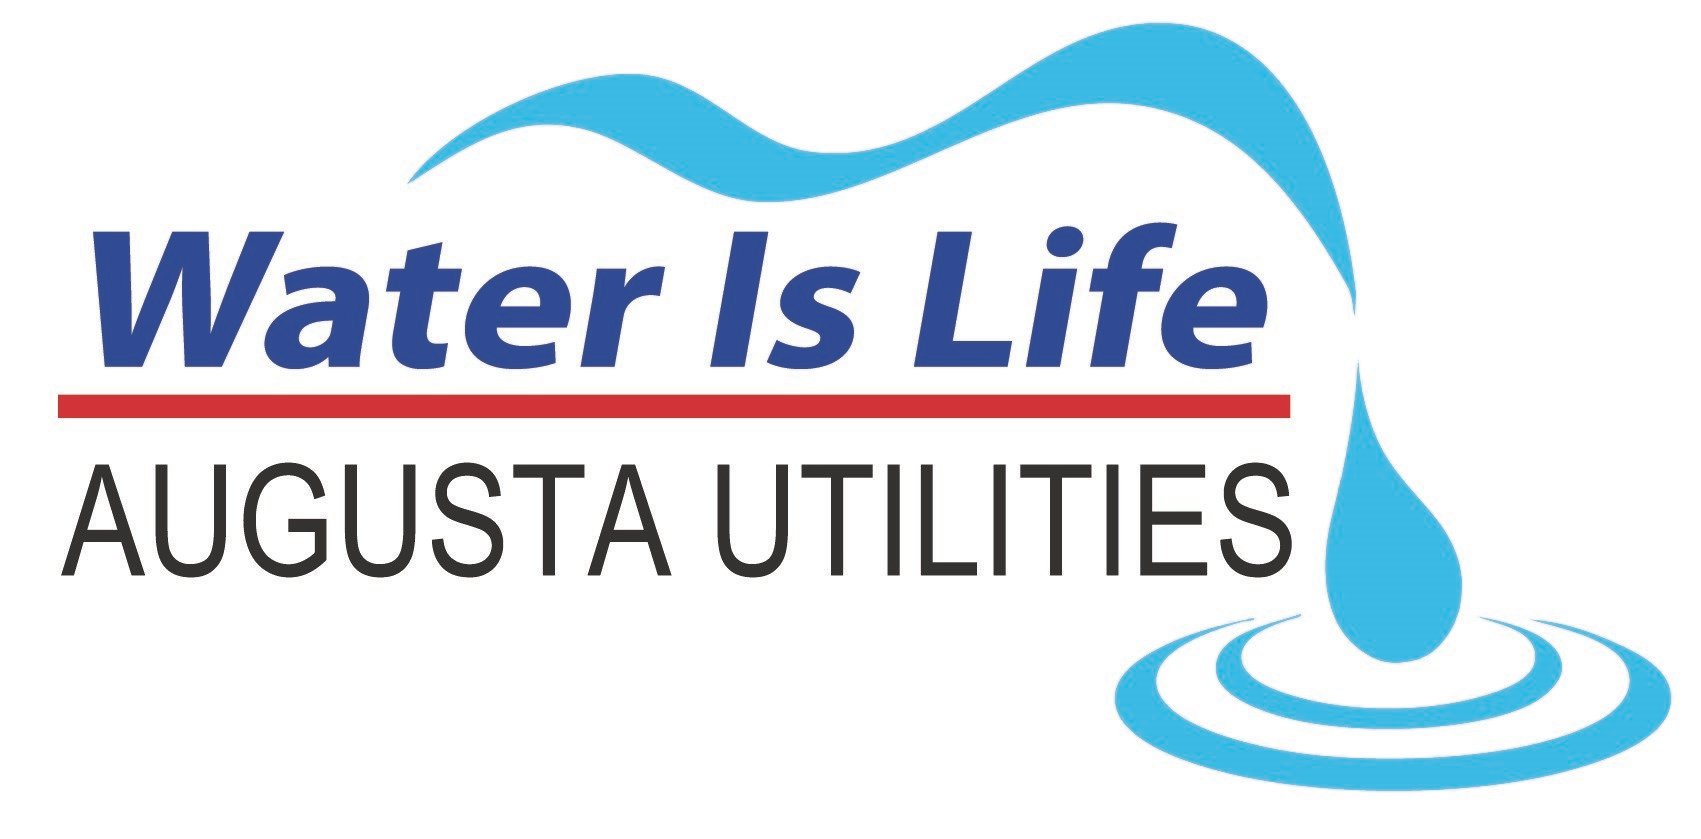 Some bills in cycles 9, 10, and 11 were overcharged. Augusta Utilities will reissue bills. (Source: Augusta Utilities)